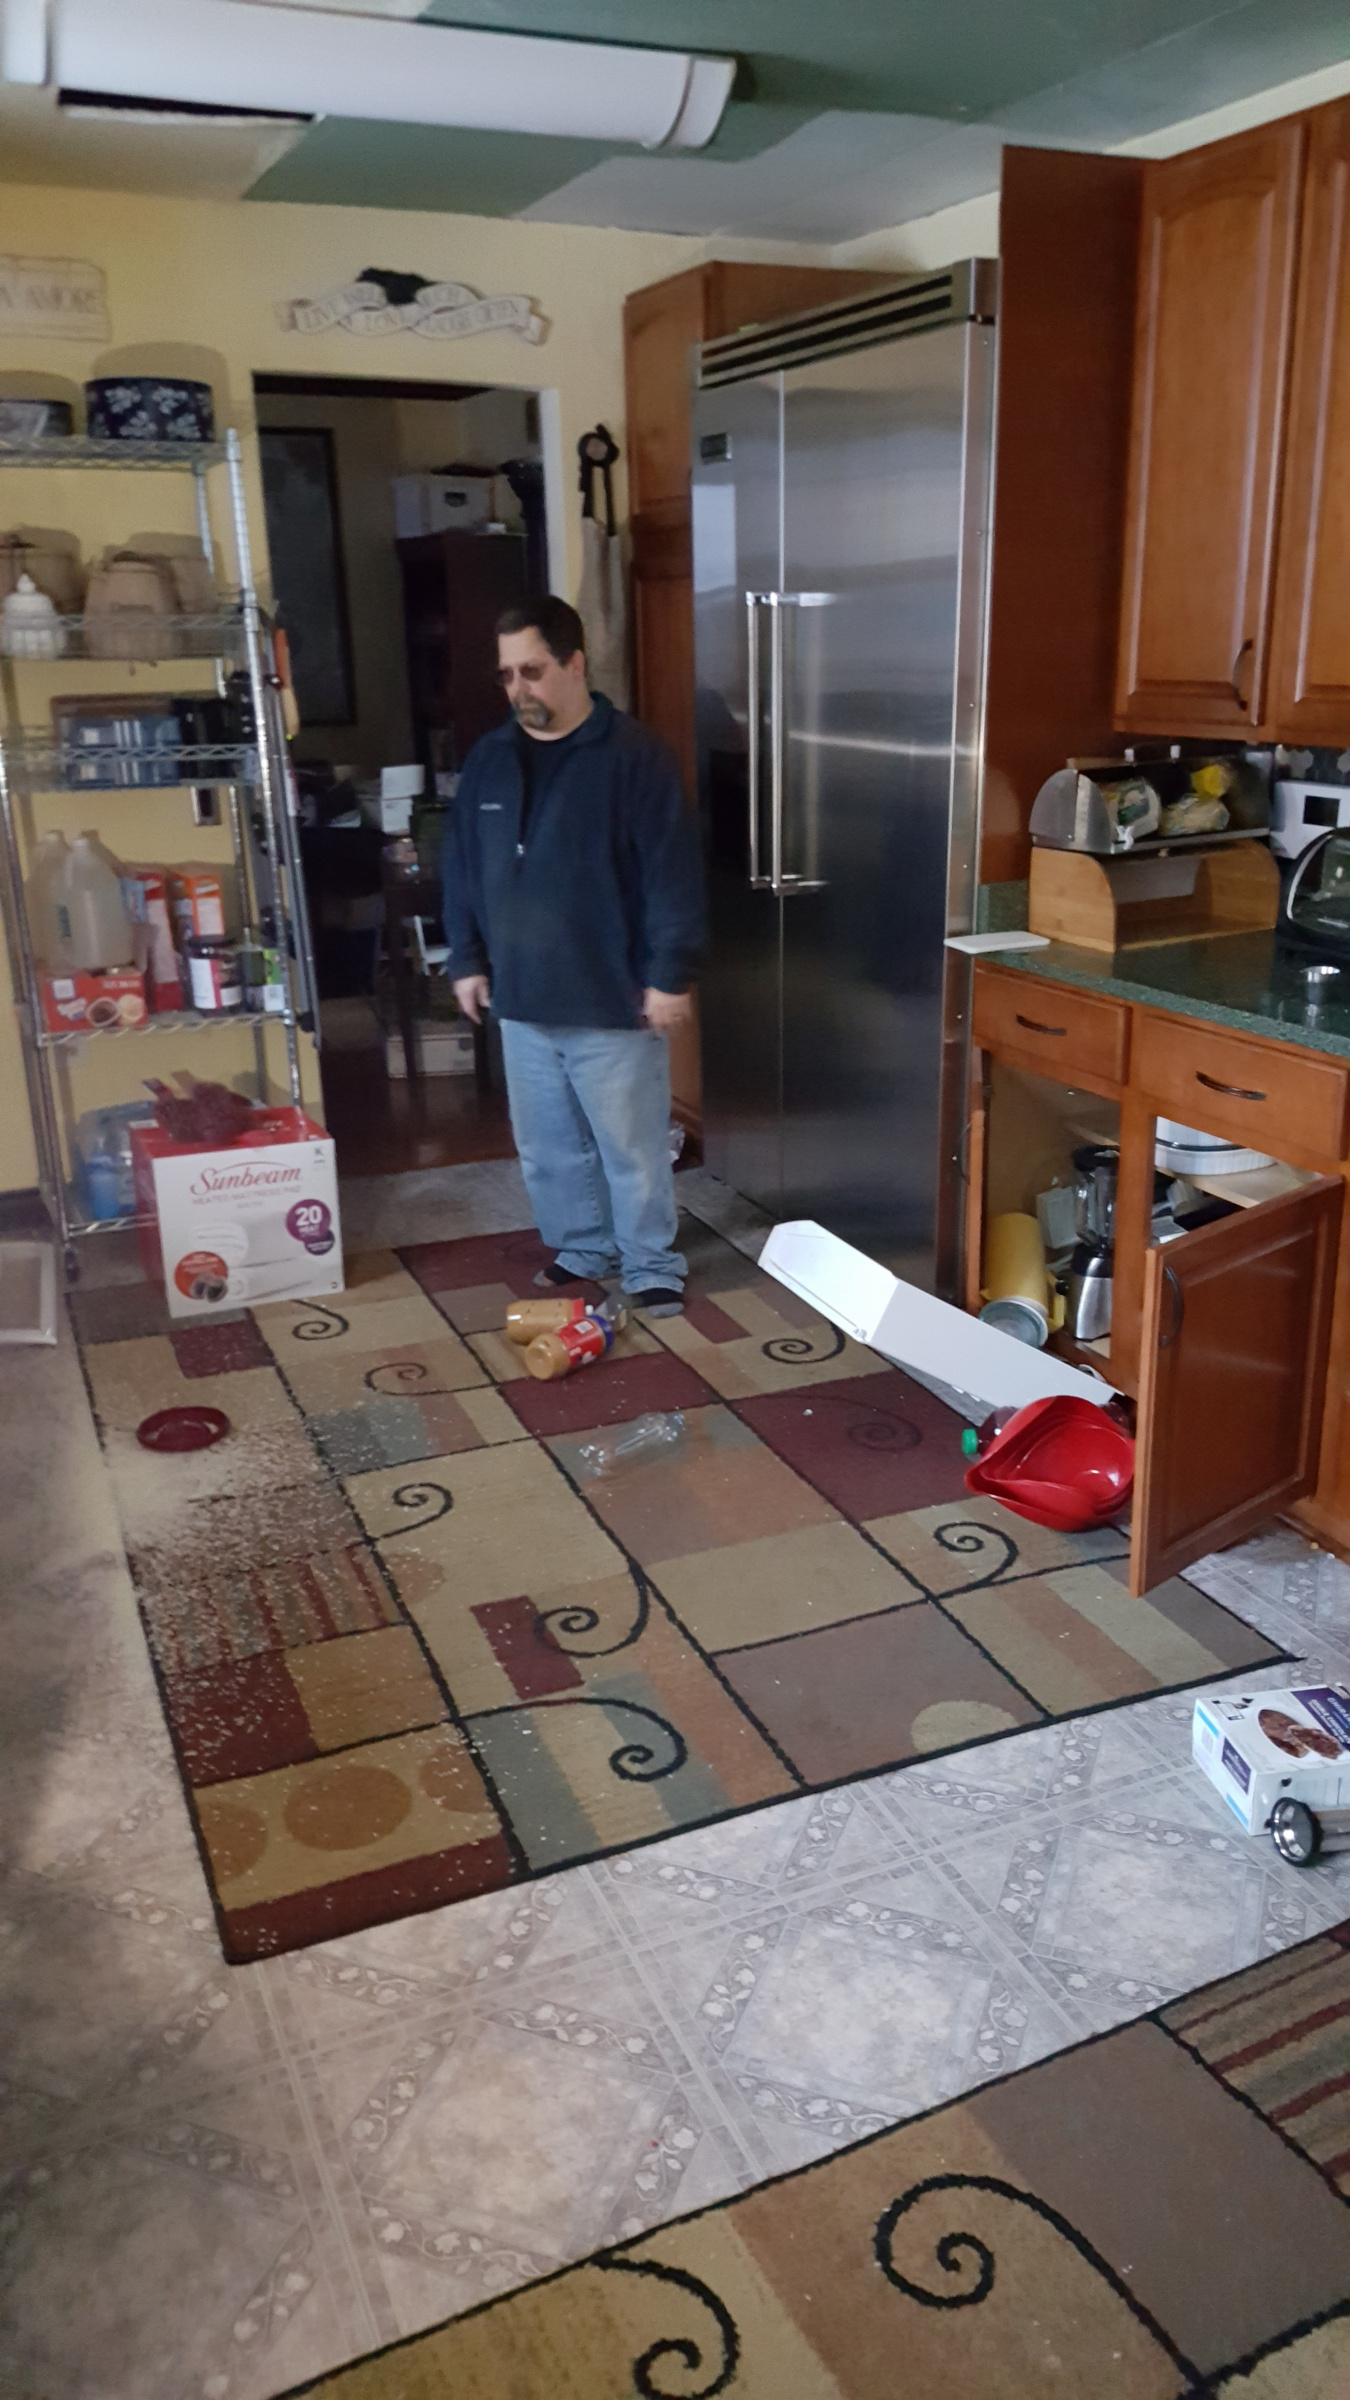 Radiant Floor Heating: Electric vs Water Retrofit-20181130_105534.jpg